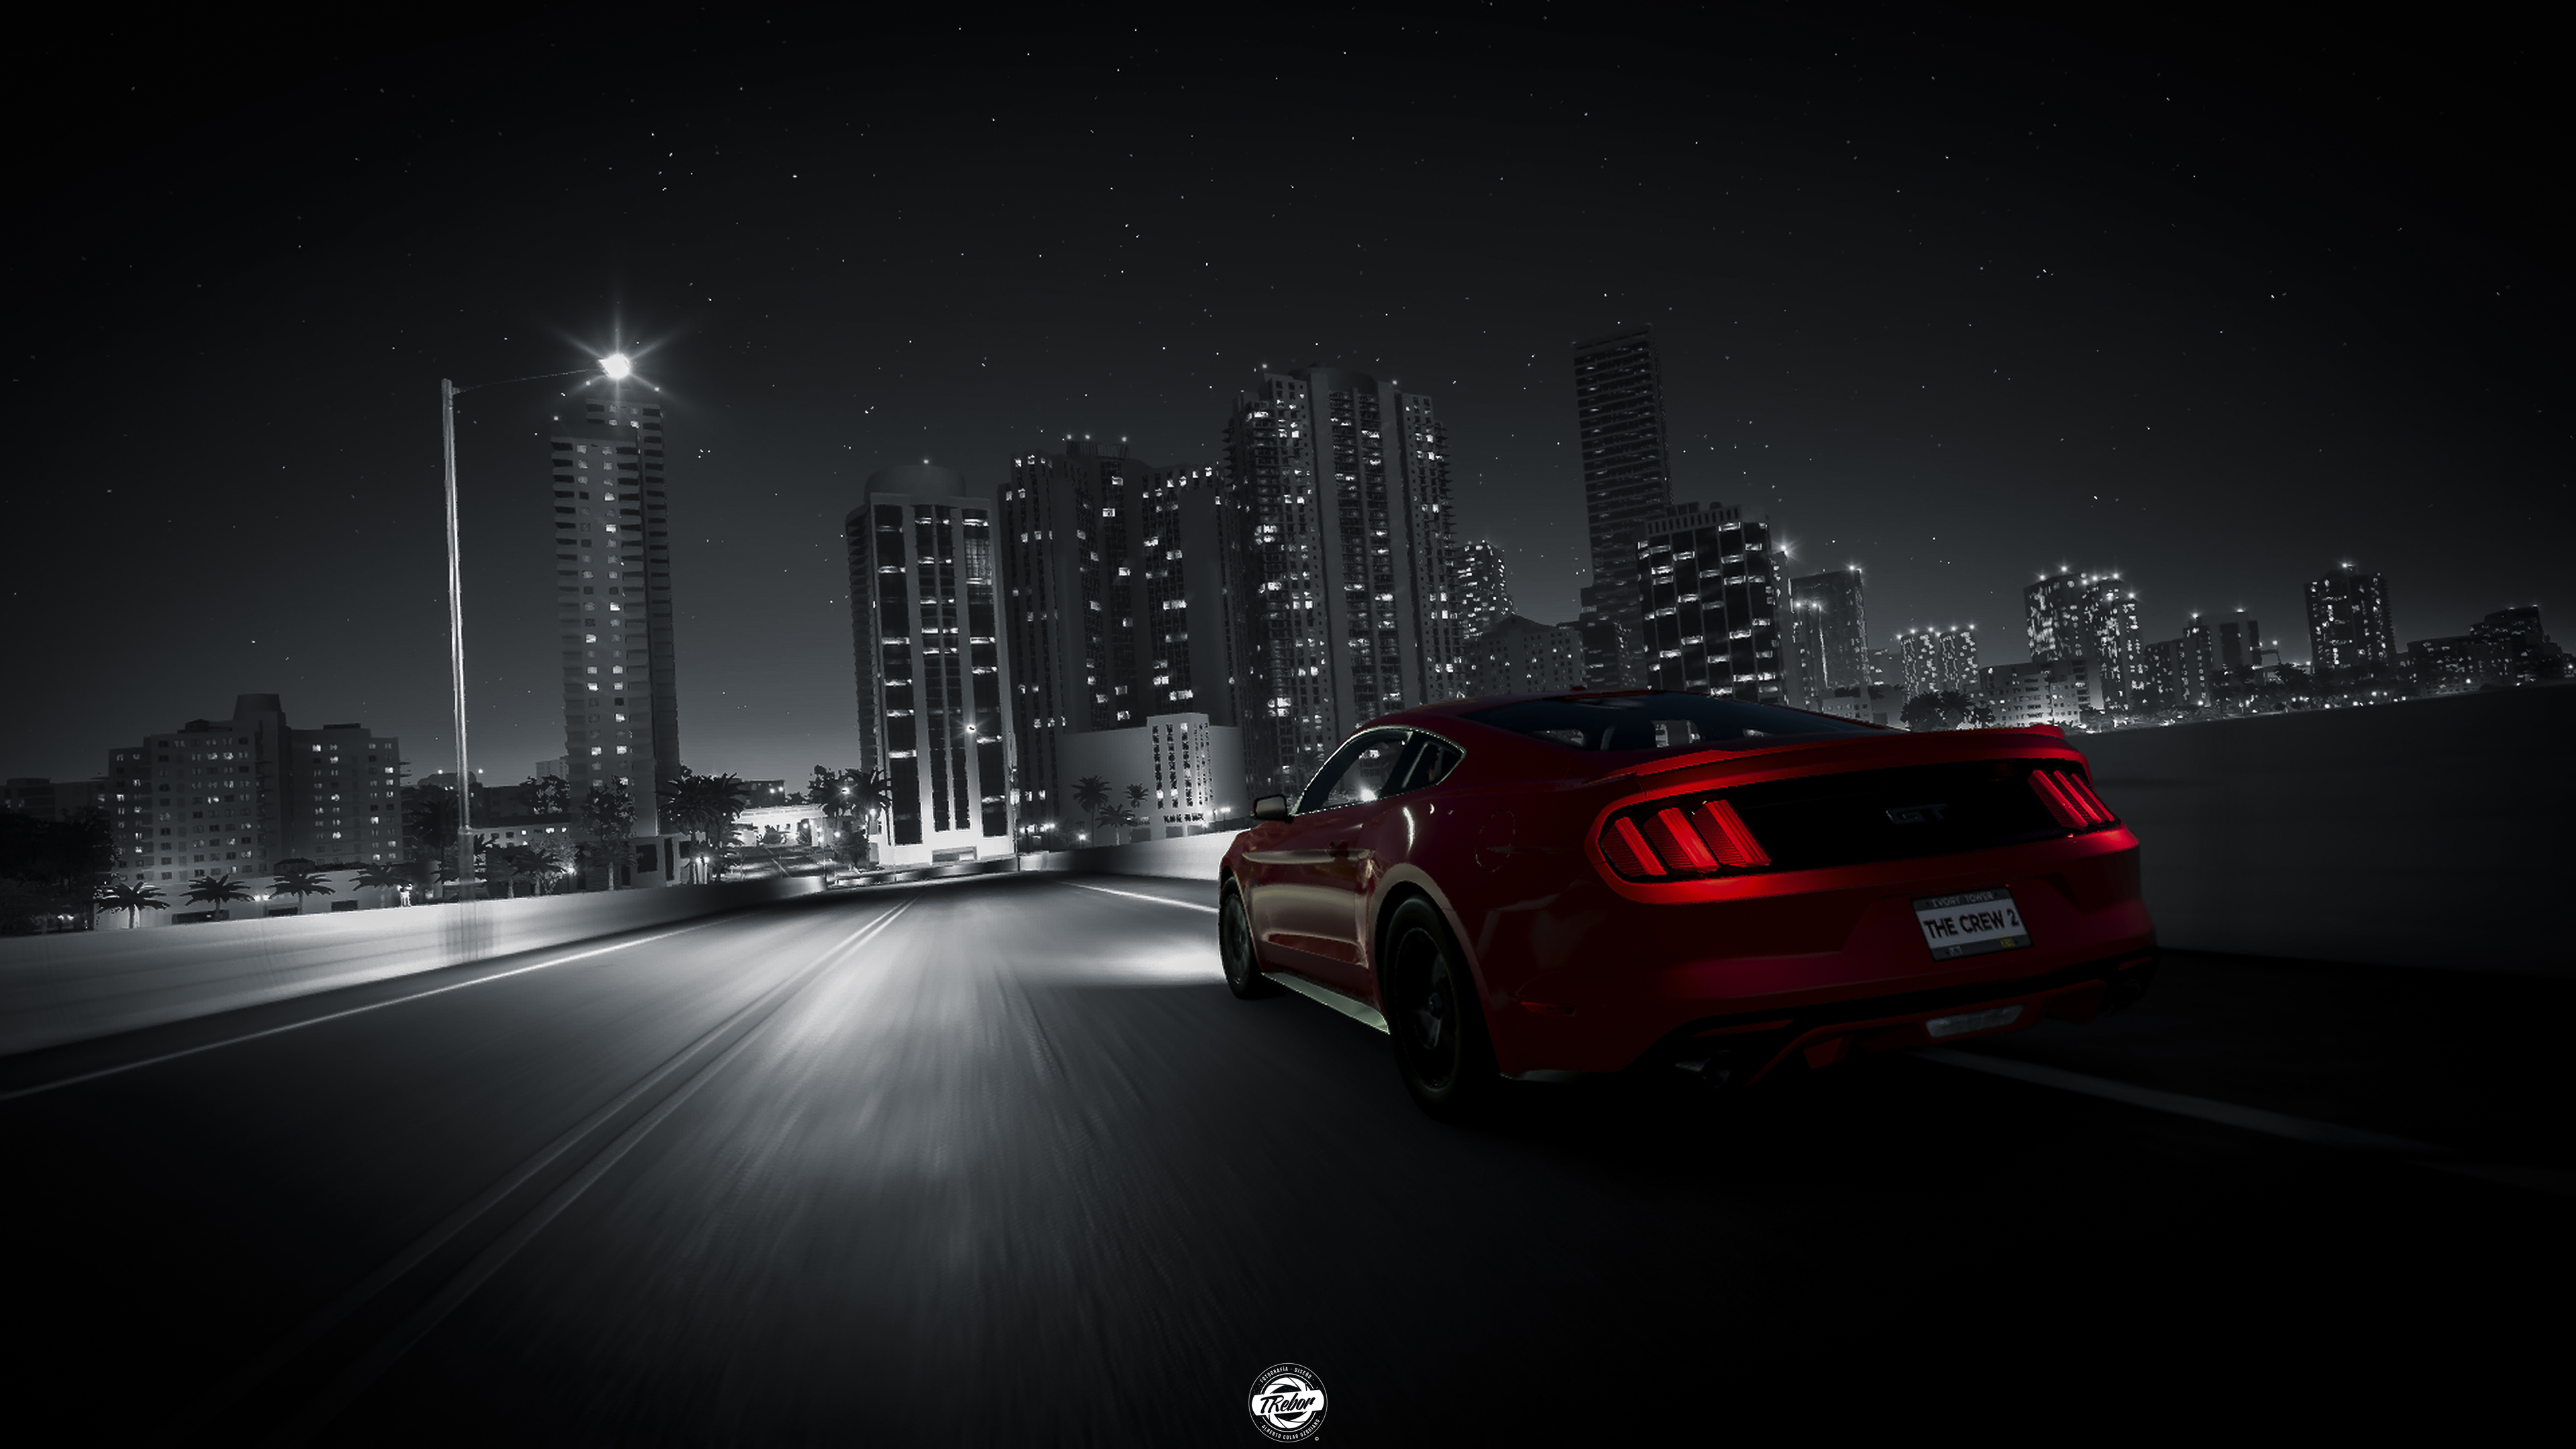 Car Logo Wallpapers For Mobile The Crew 2 Ford Mustang Rear Lights 4k Hd Games 4k